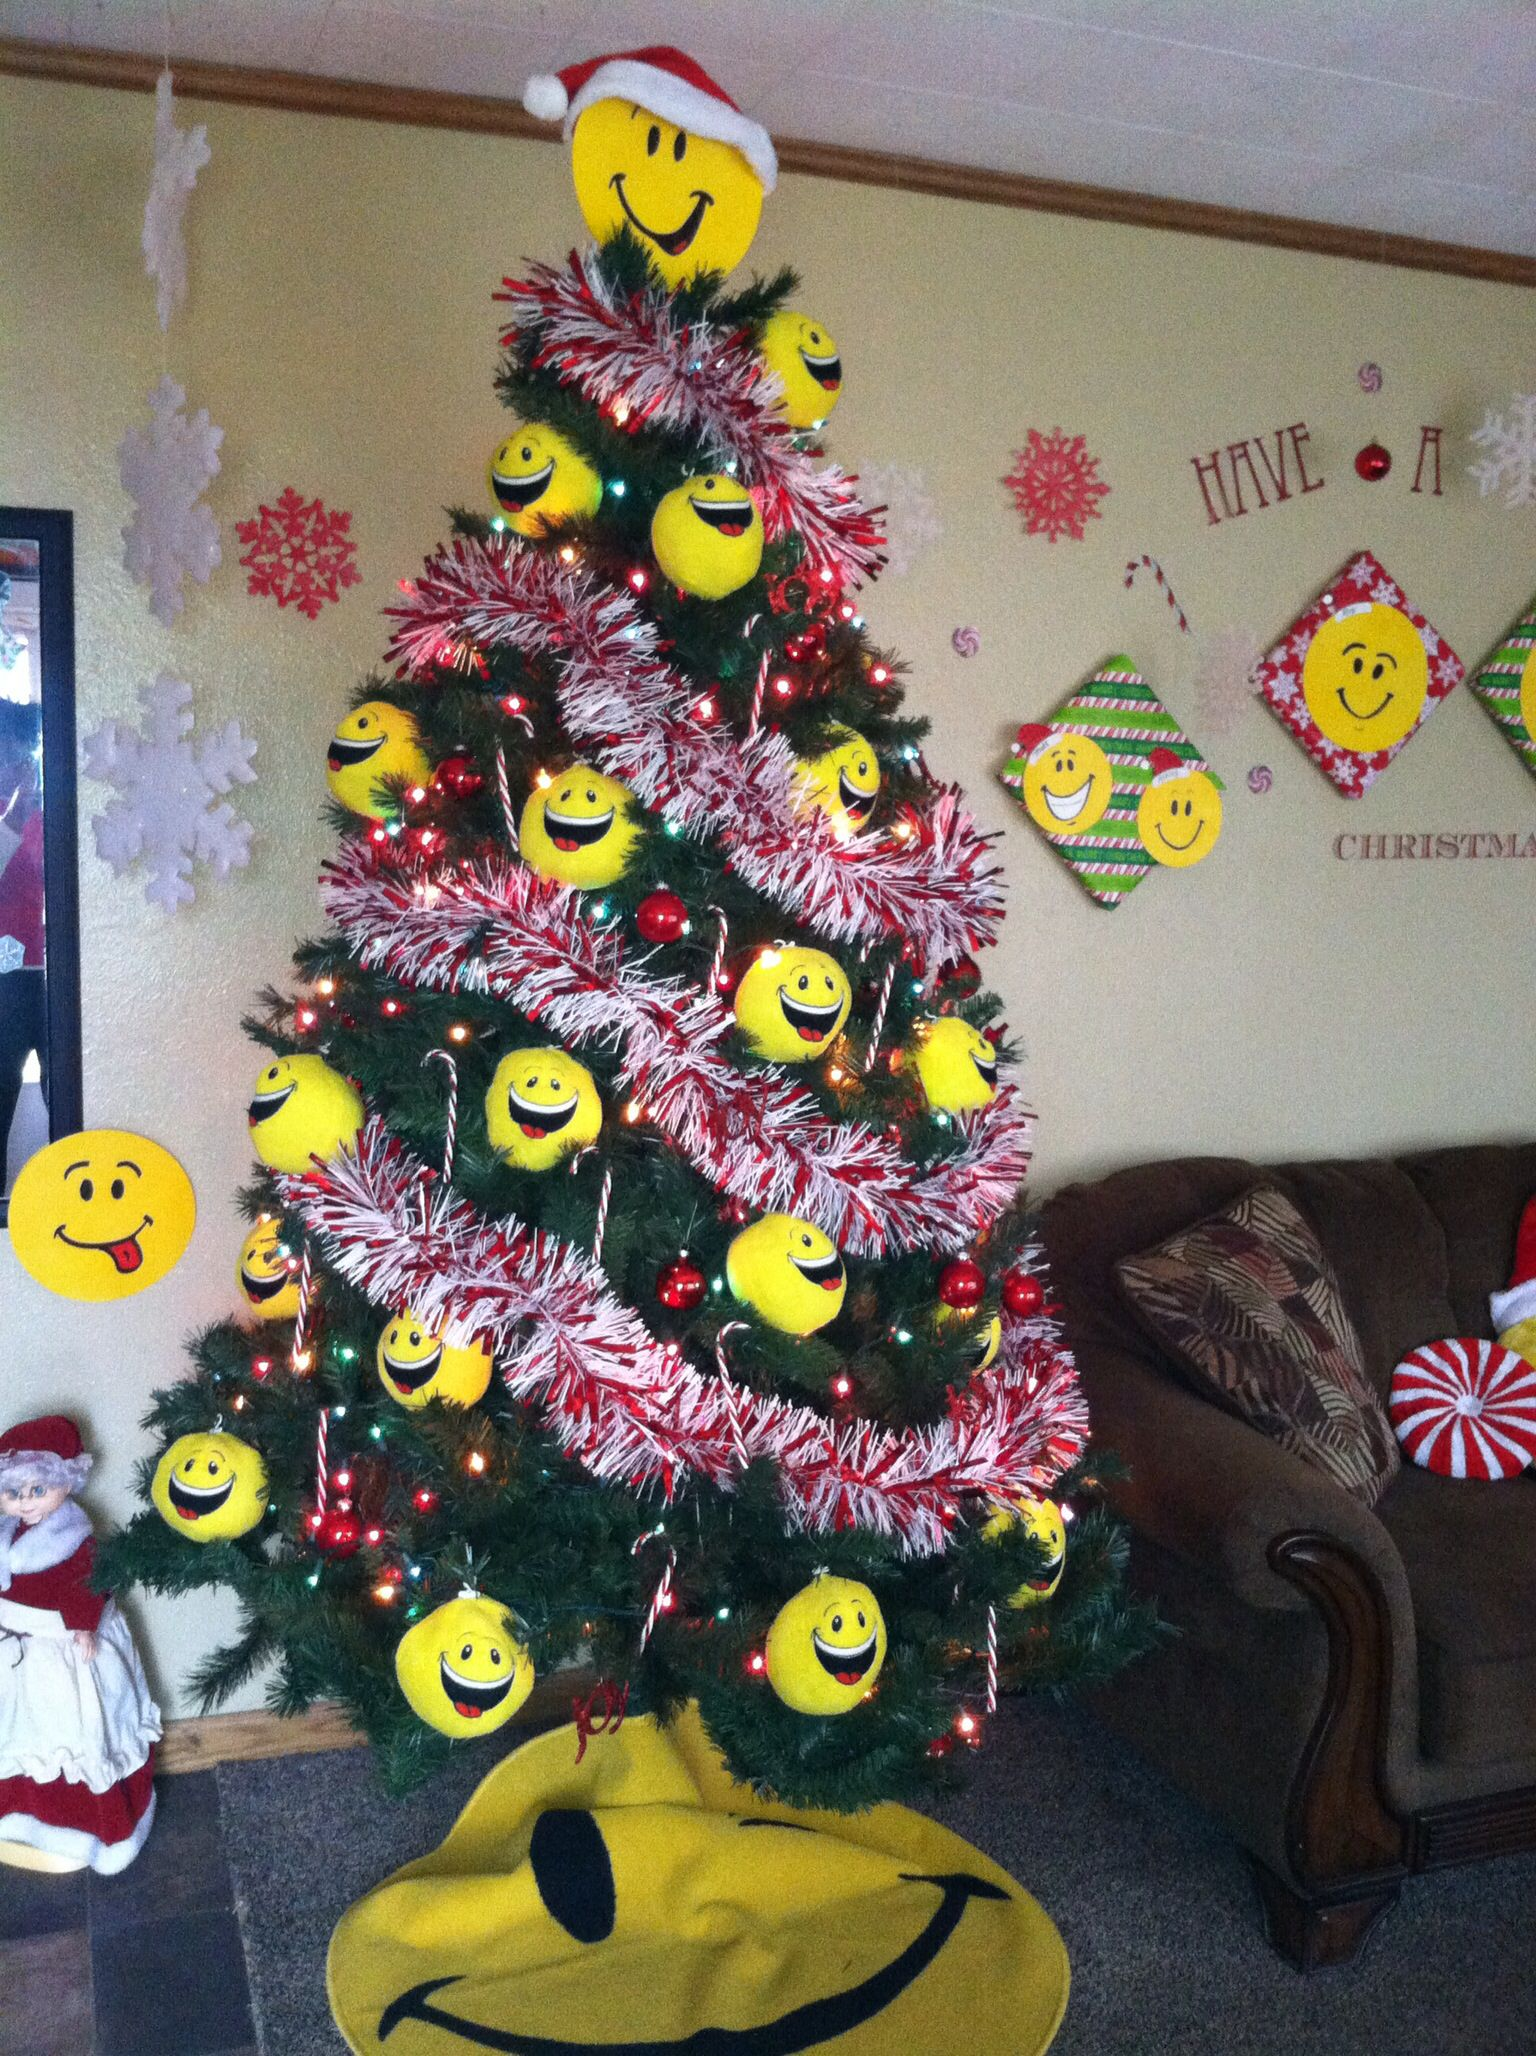 Smiley Face Christmas Tree Joy Emoji Christmas Tree Unusual Christmas Trees Emoji Christmas